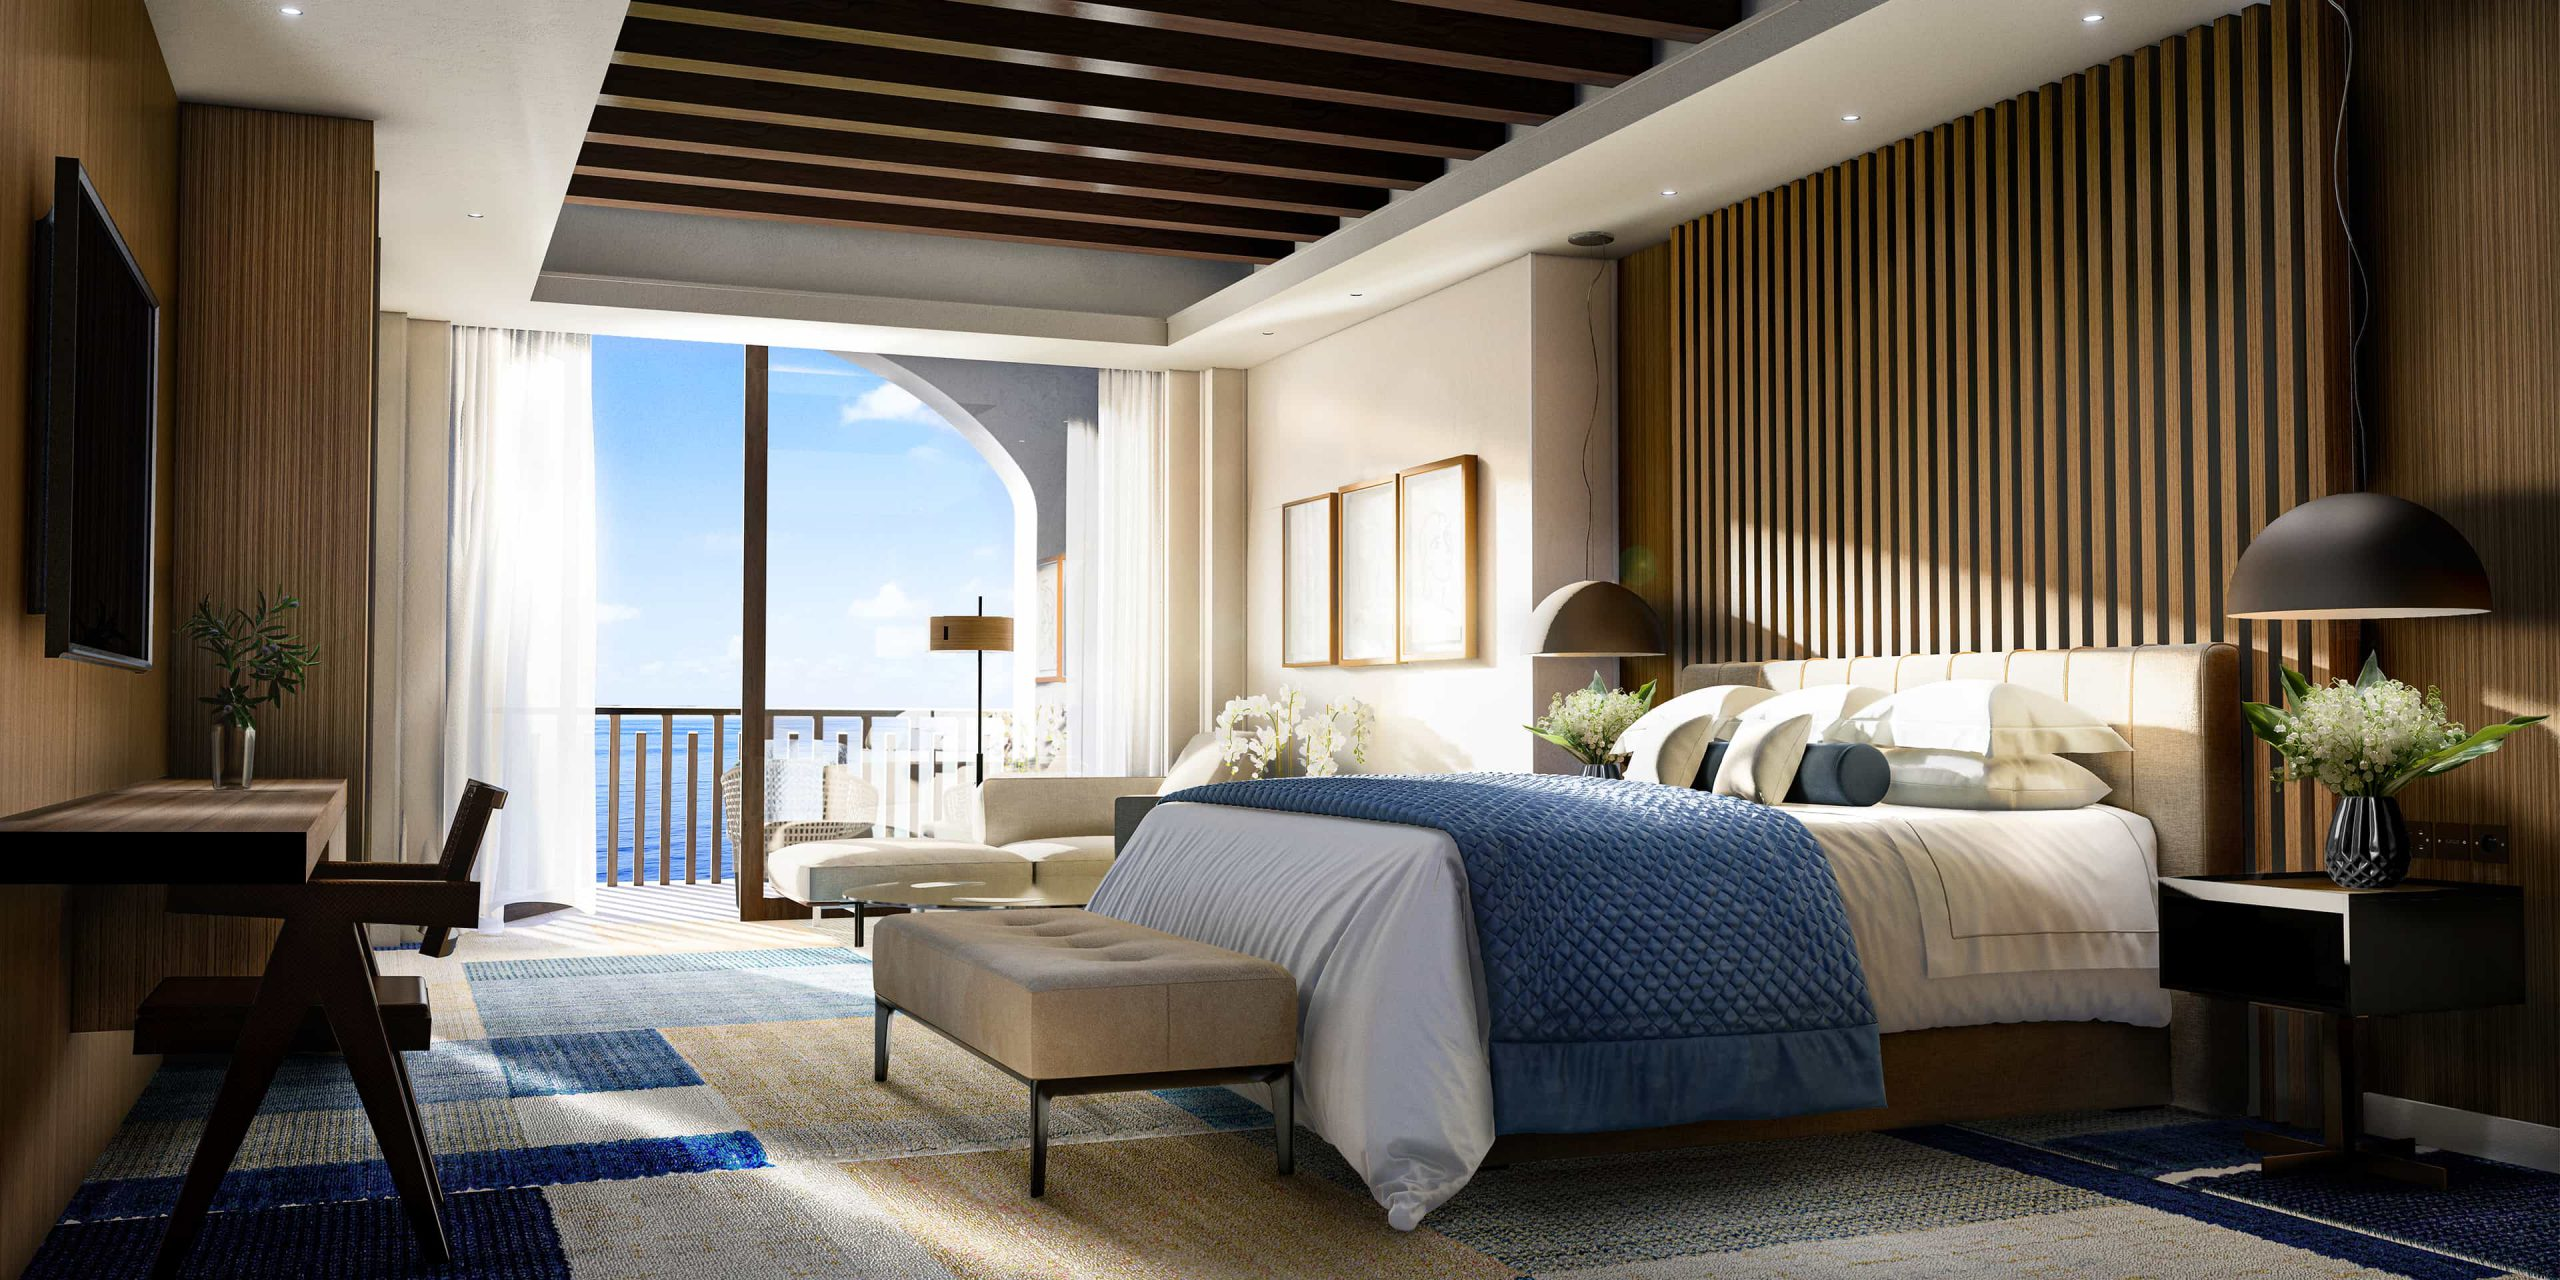 Bedroom, Hotel Le Mas. Rendered in Lumion by Ten Over Media.